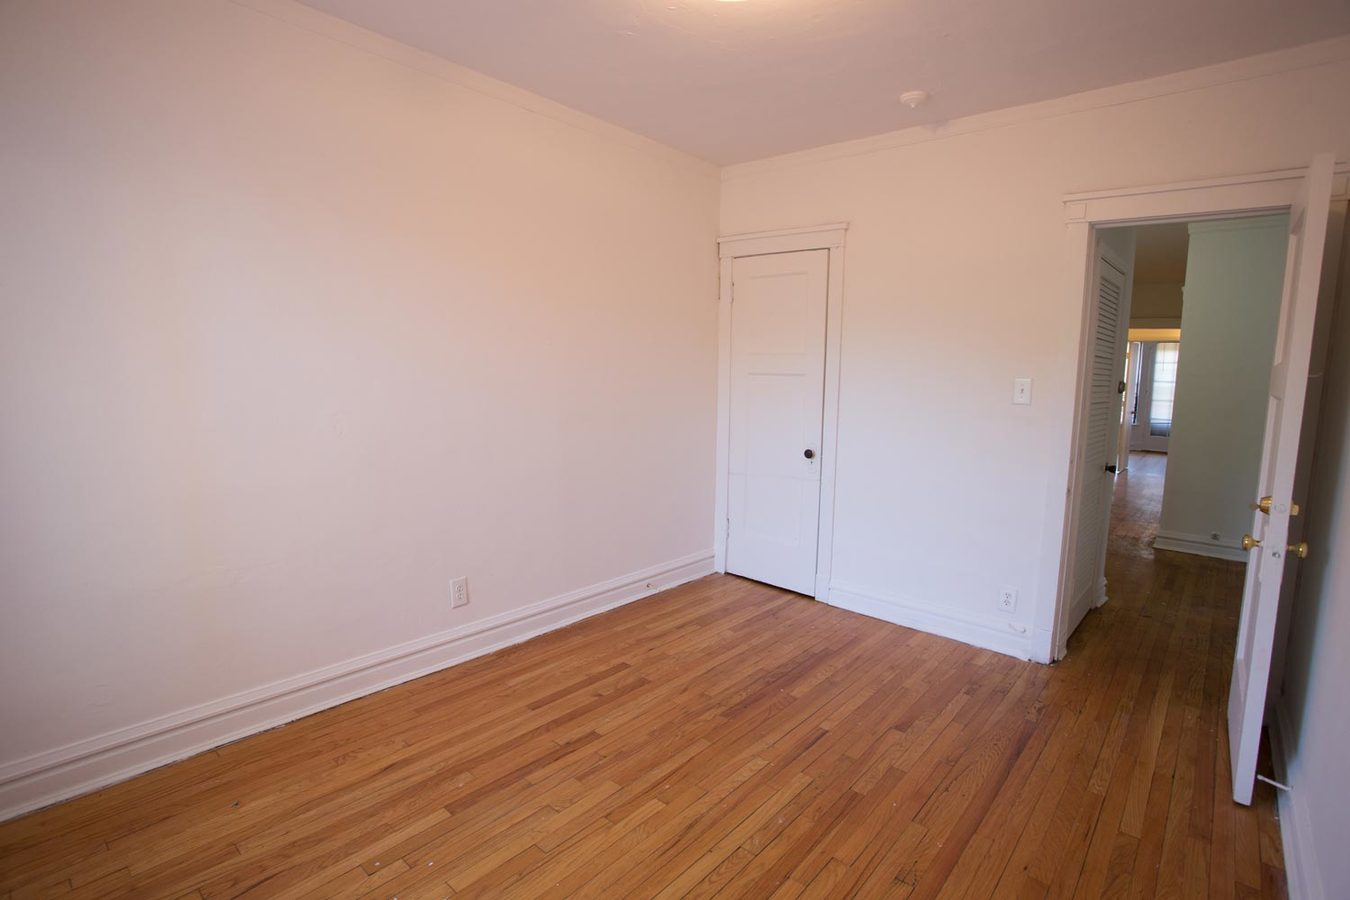 3 Bedrooms 2 Bathrooms Apartment for rent at 5452 S. Ellis Avenue in Chicago, IL